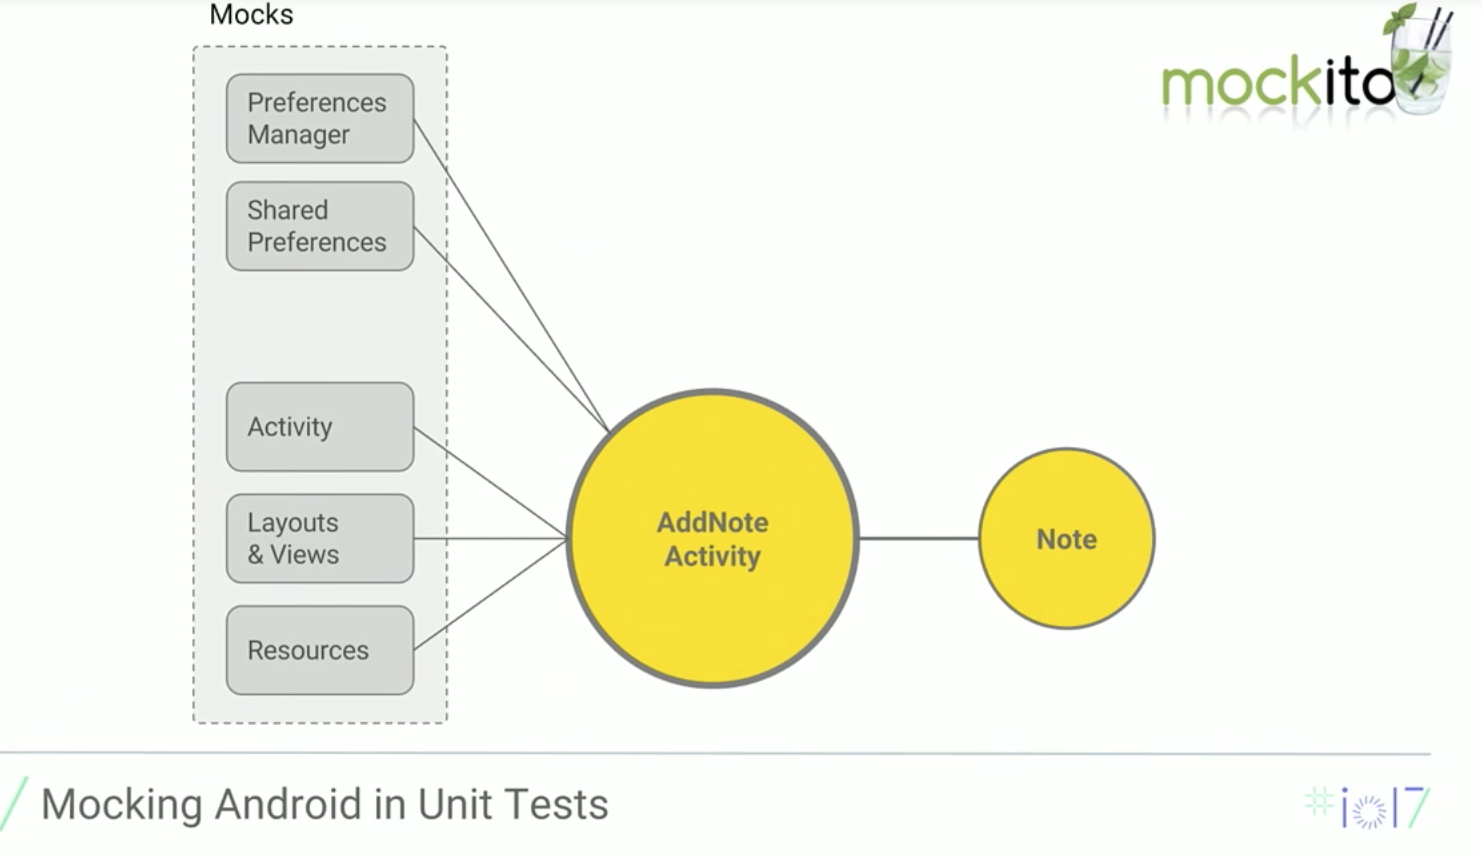 Mocking Android in Unit Tests